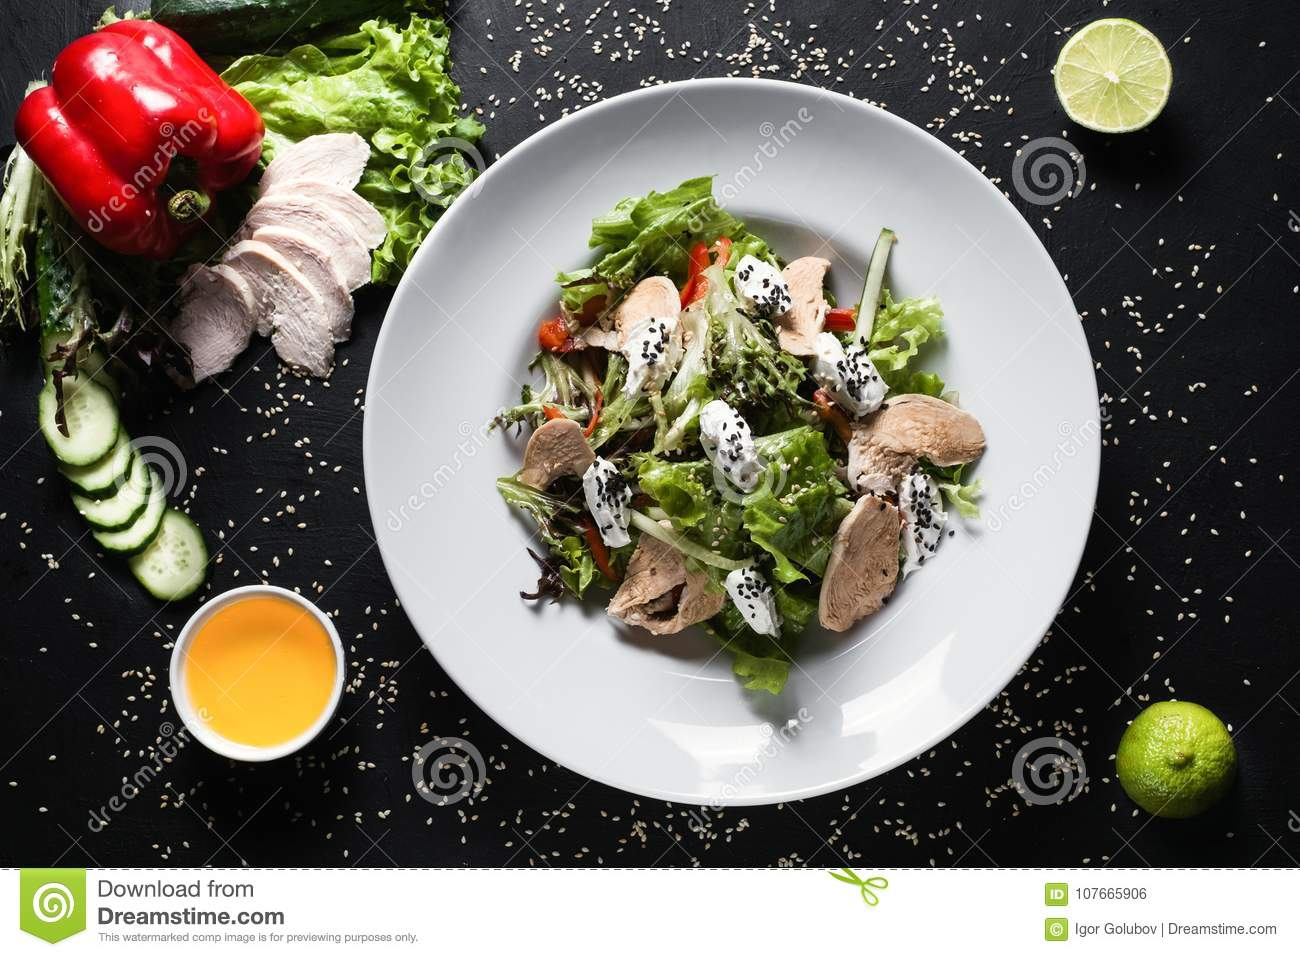 Food Photography Healthy Eating Lifestyle Concept Stock Photo Image Of Healthy Ideas 107665906